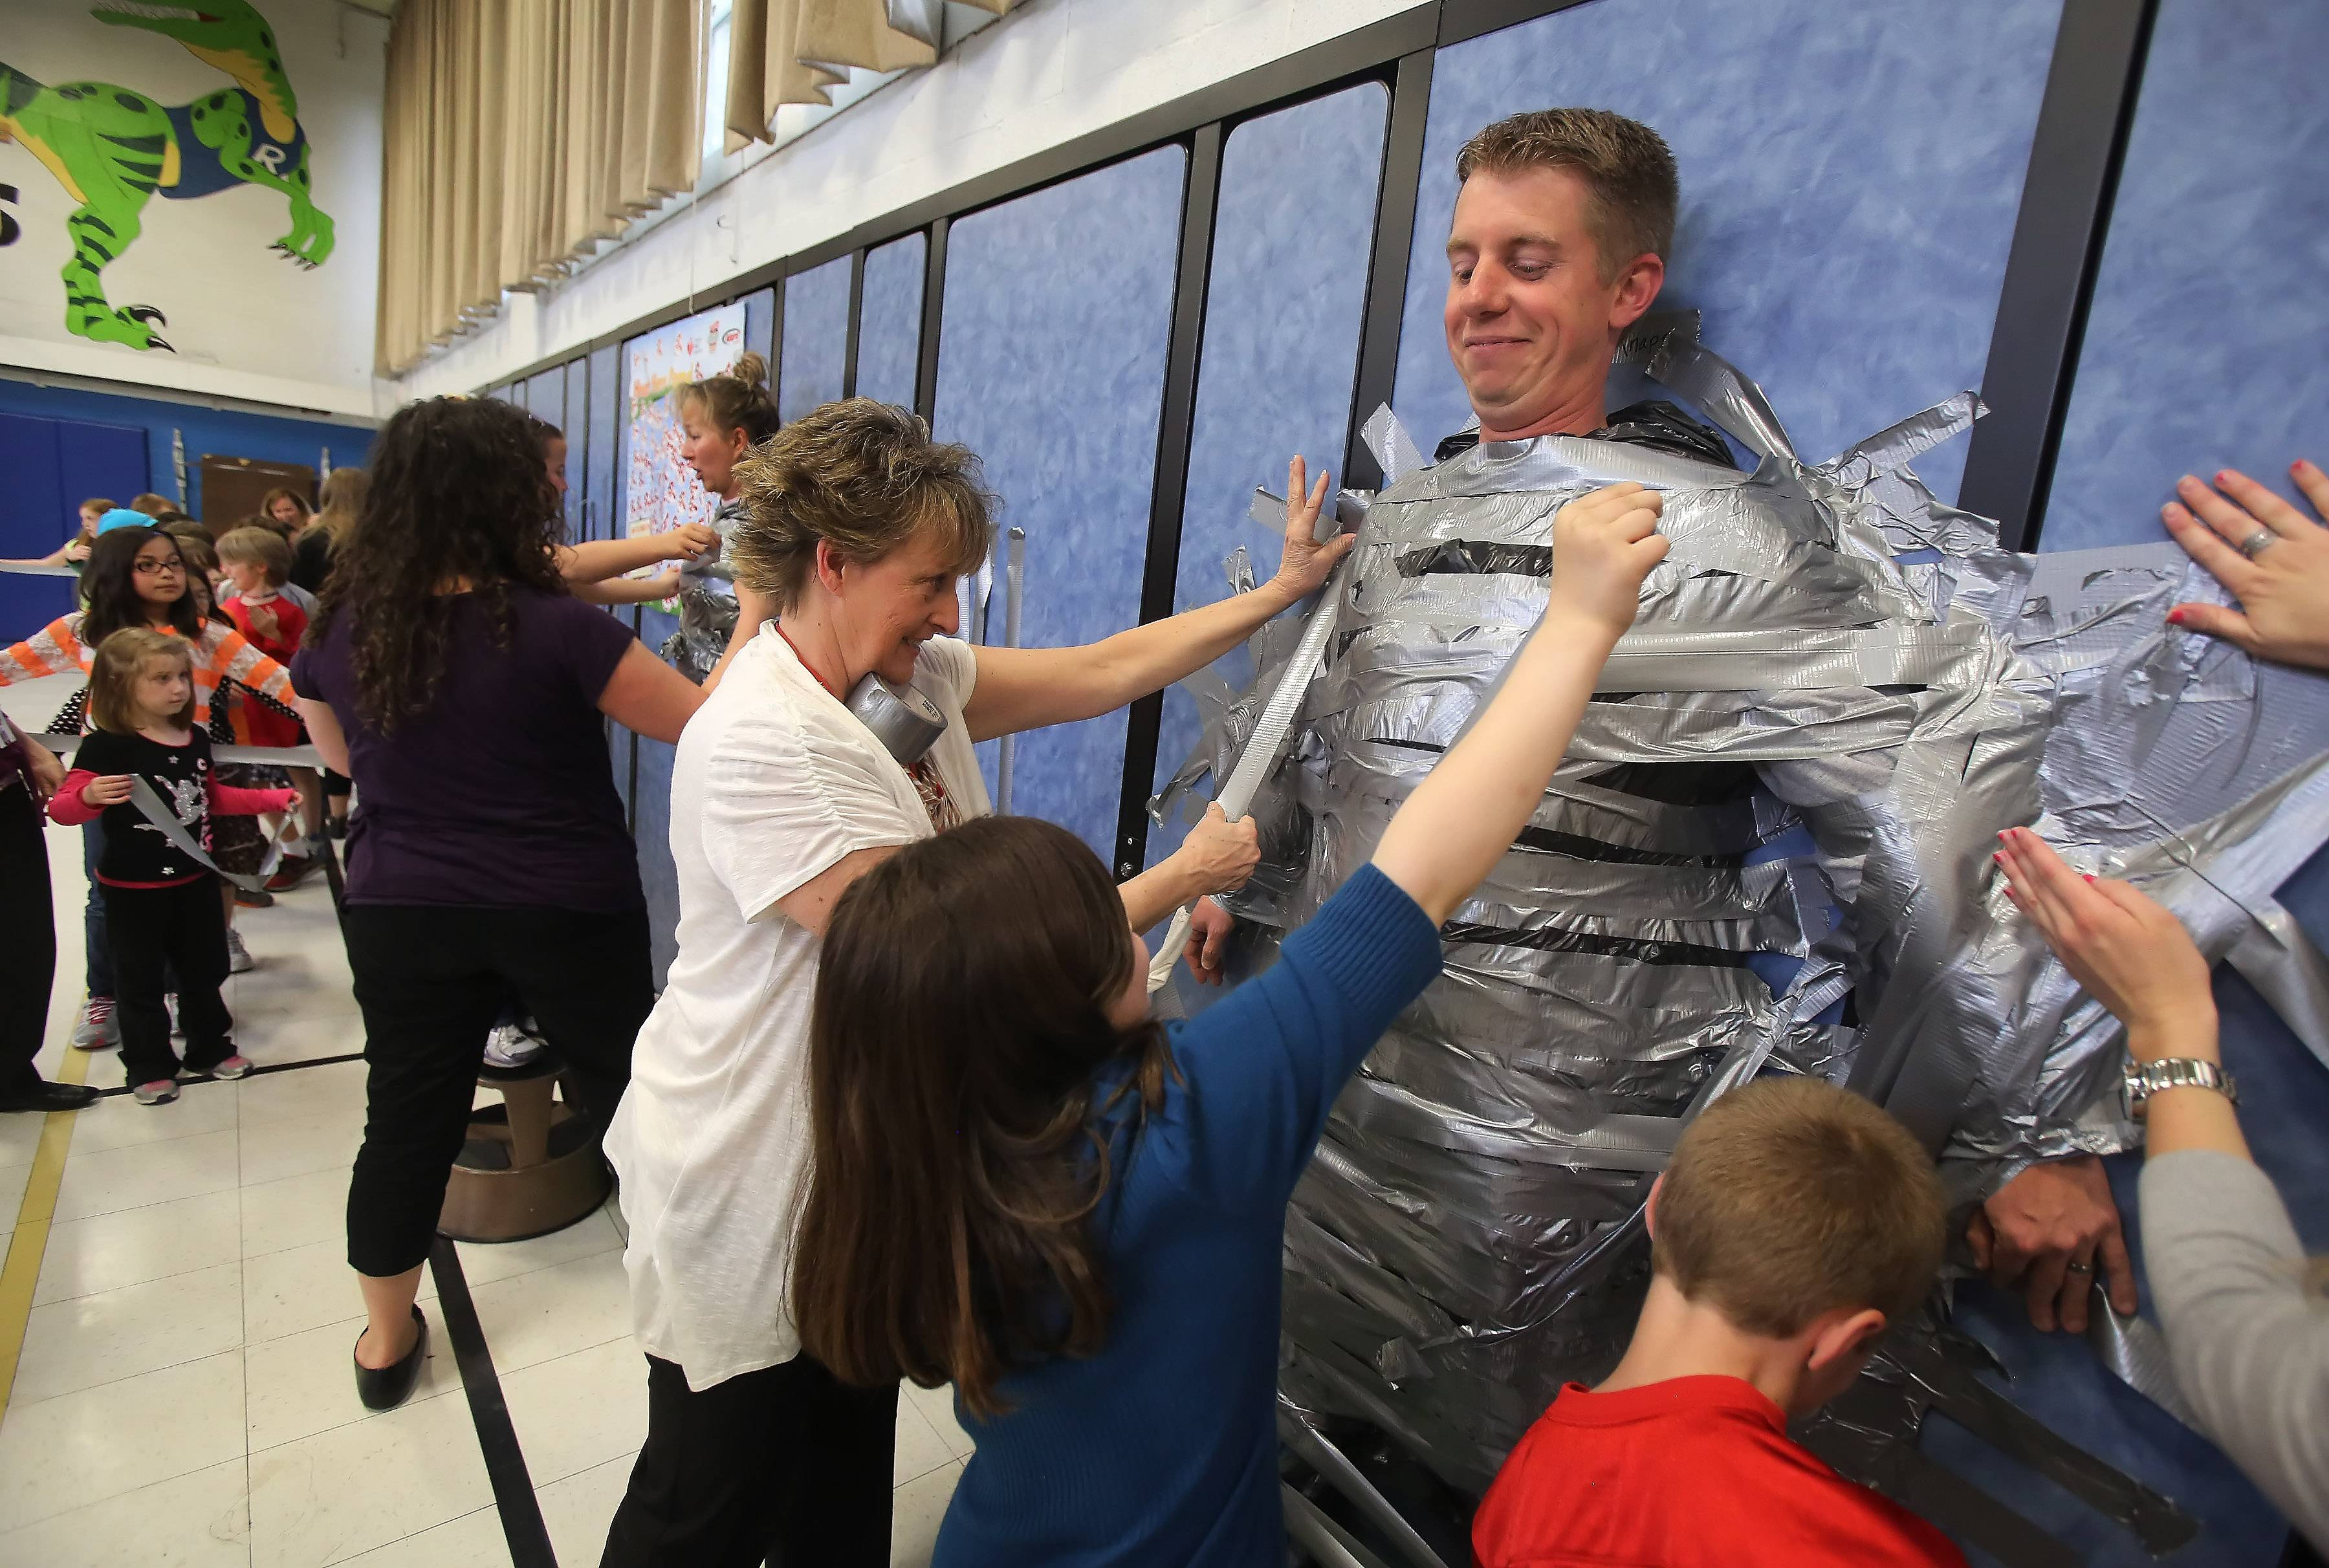 Rockland School students duct tape Principal Jeff Knapp to the gym wall Tuesday along with Learning Center Director Becky Johnson and physical education teacher Michael Kolar. Students and teachers raised $7,217.46 for the American Heart Association through the Jump Rope For Heart fundraiser at the Libertyville school.